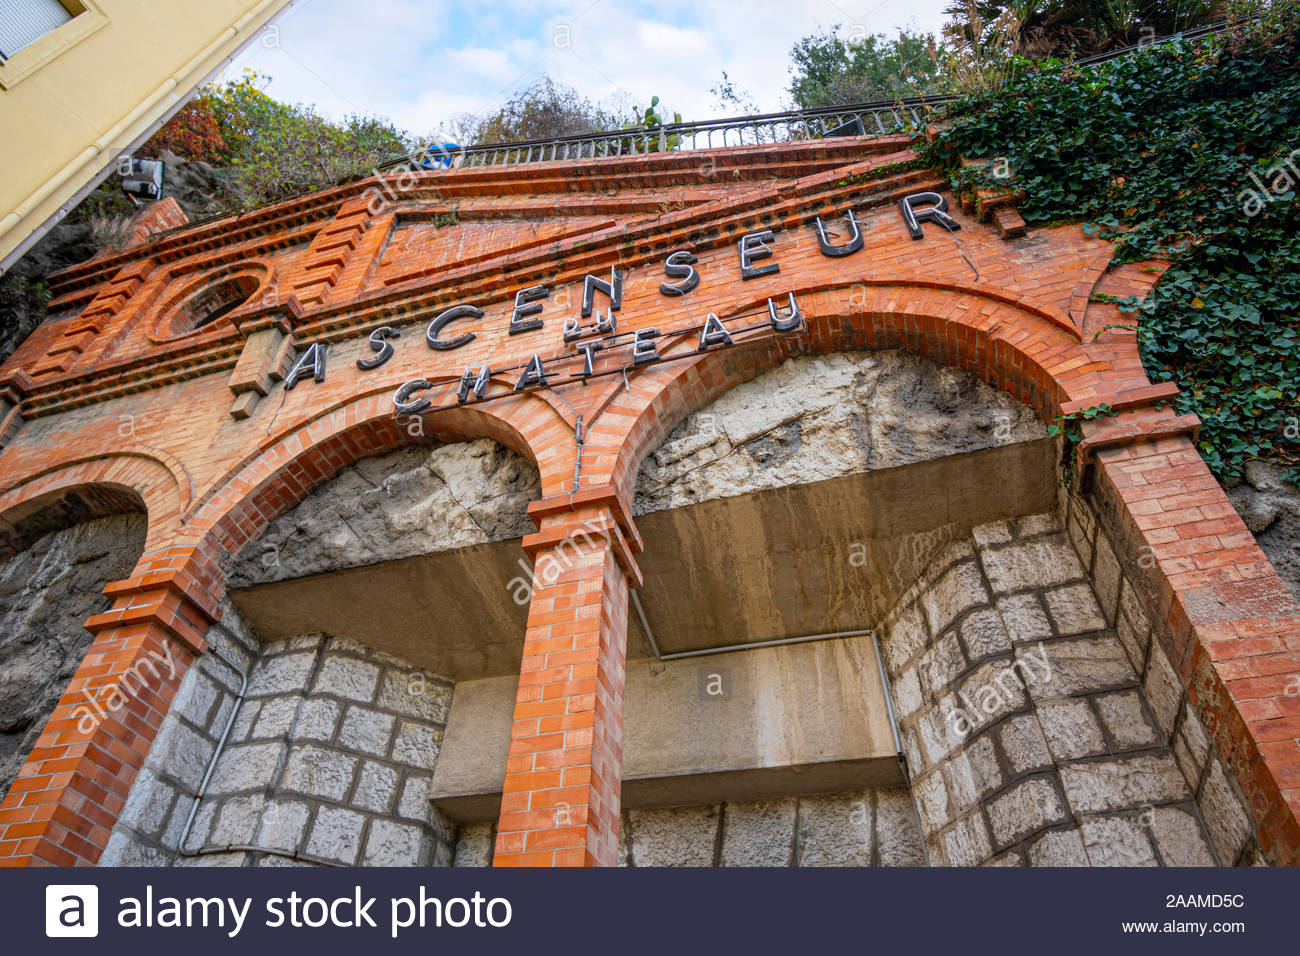 The exterior entrance to the elevator lift on Castle Hill in Nice, France. Stock Photo